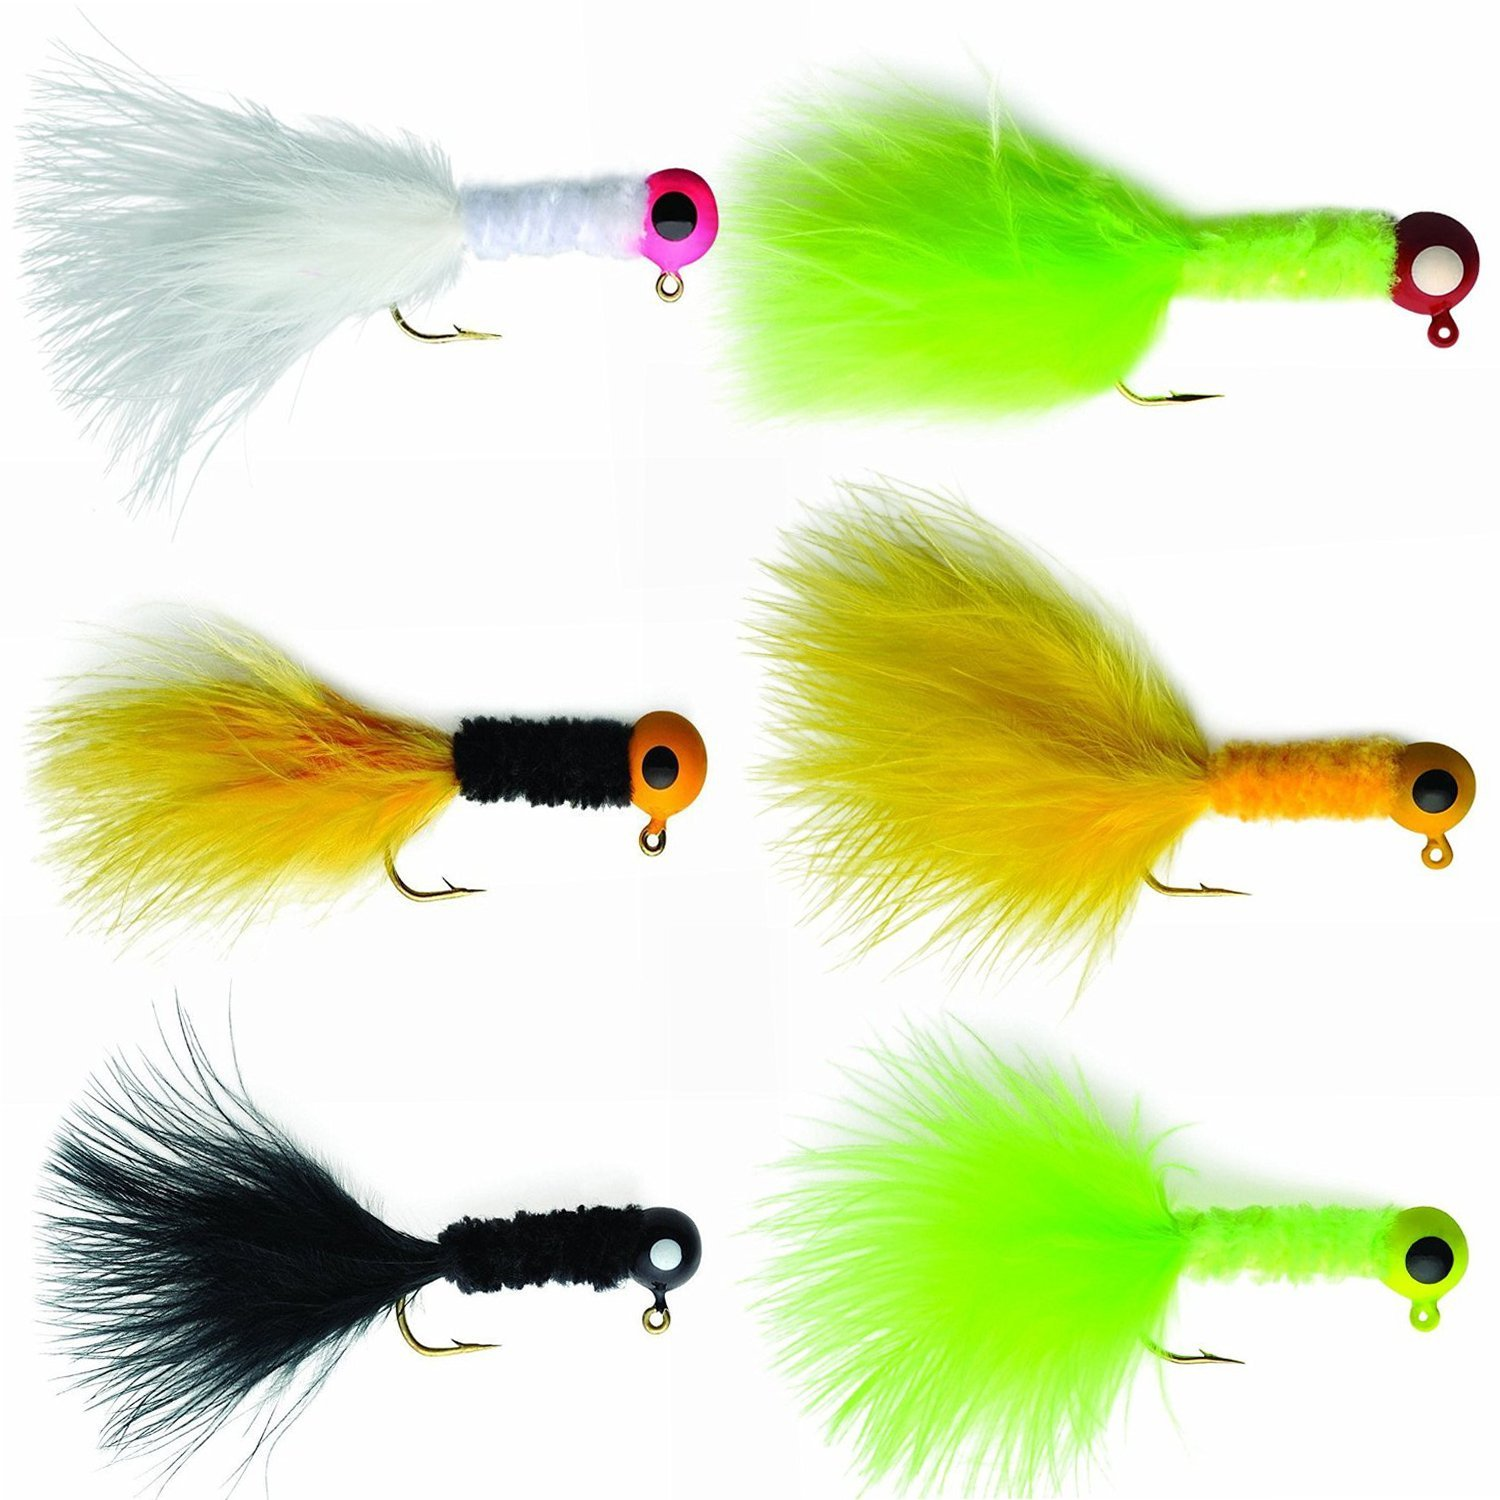 Fishing Crappie Jigs Hard Lure Accessory Marabou Bass Pike Walleye Jigs with for